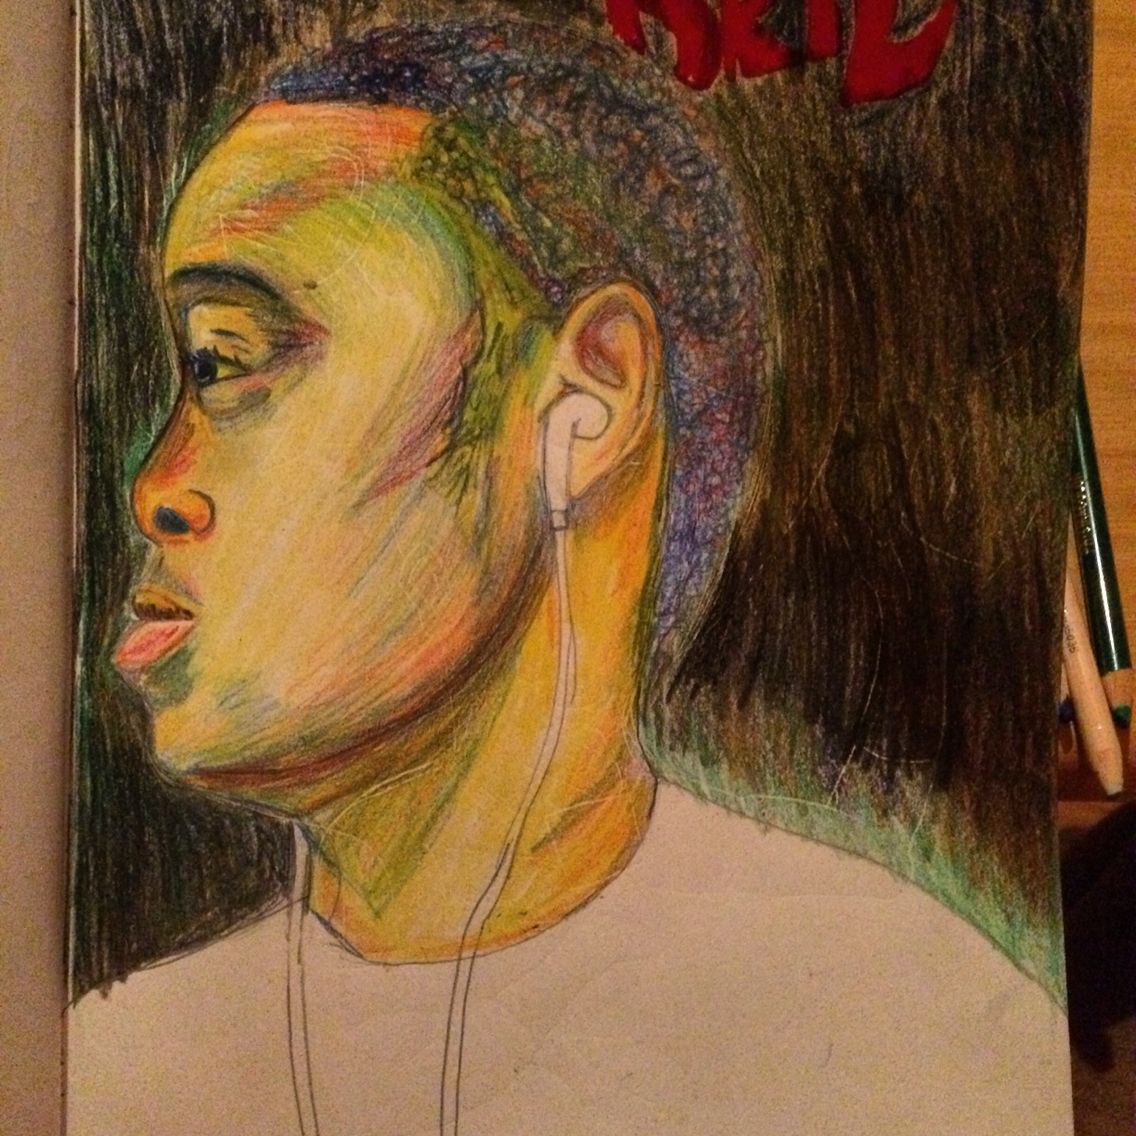 A Self Portrait I did of my self in color pencils.